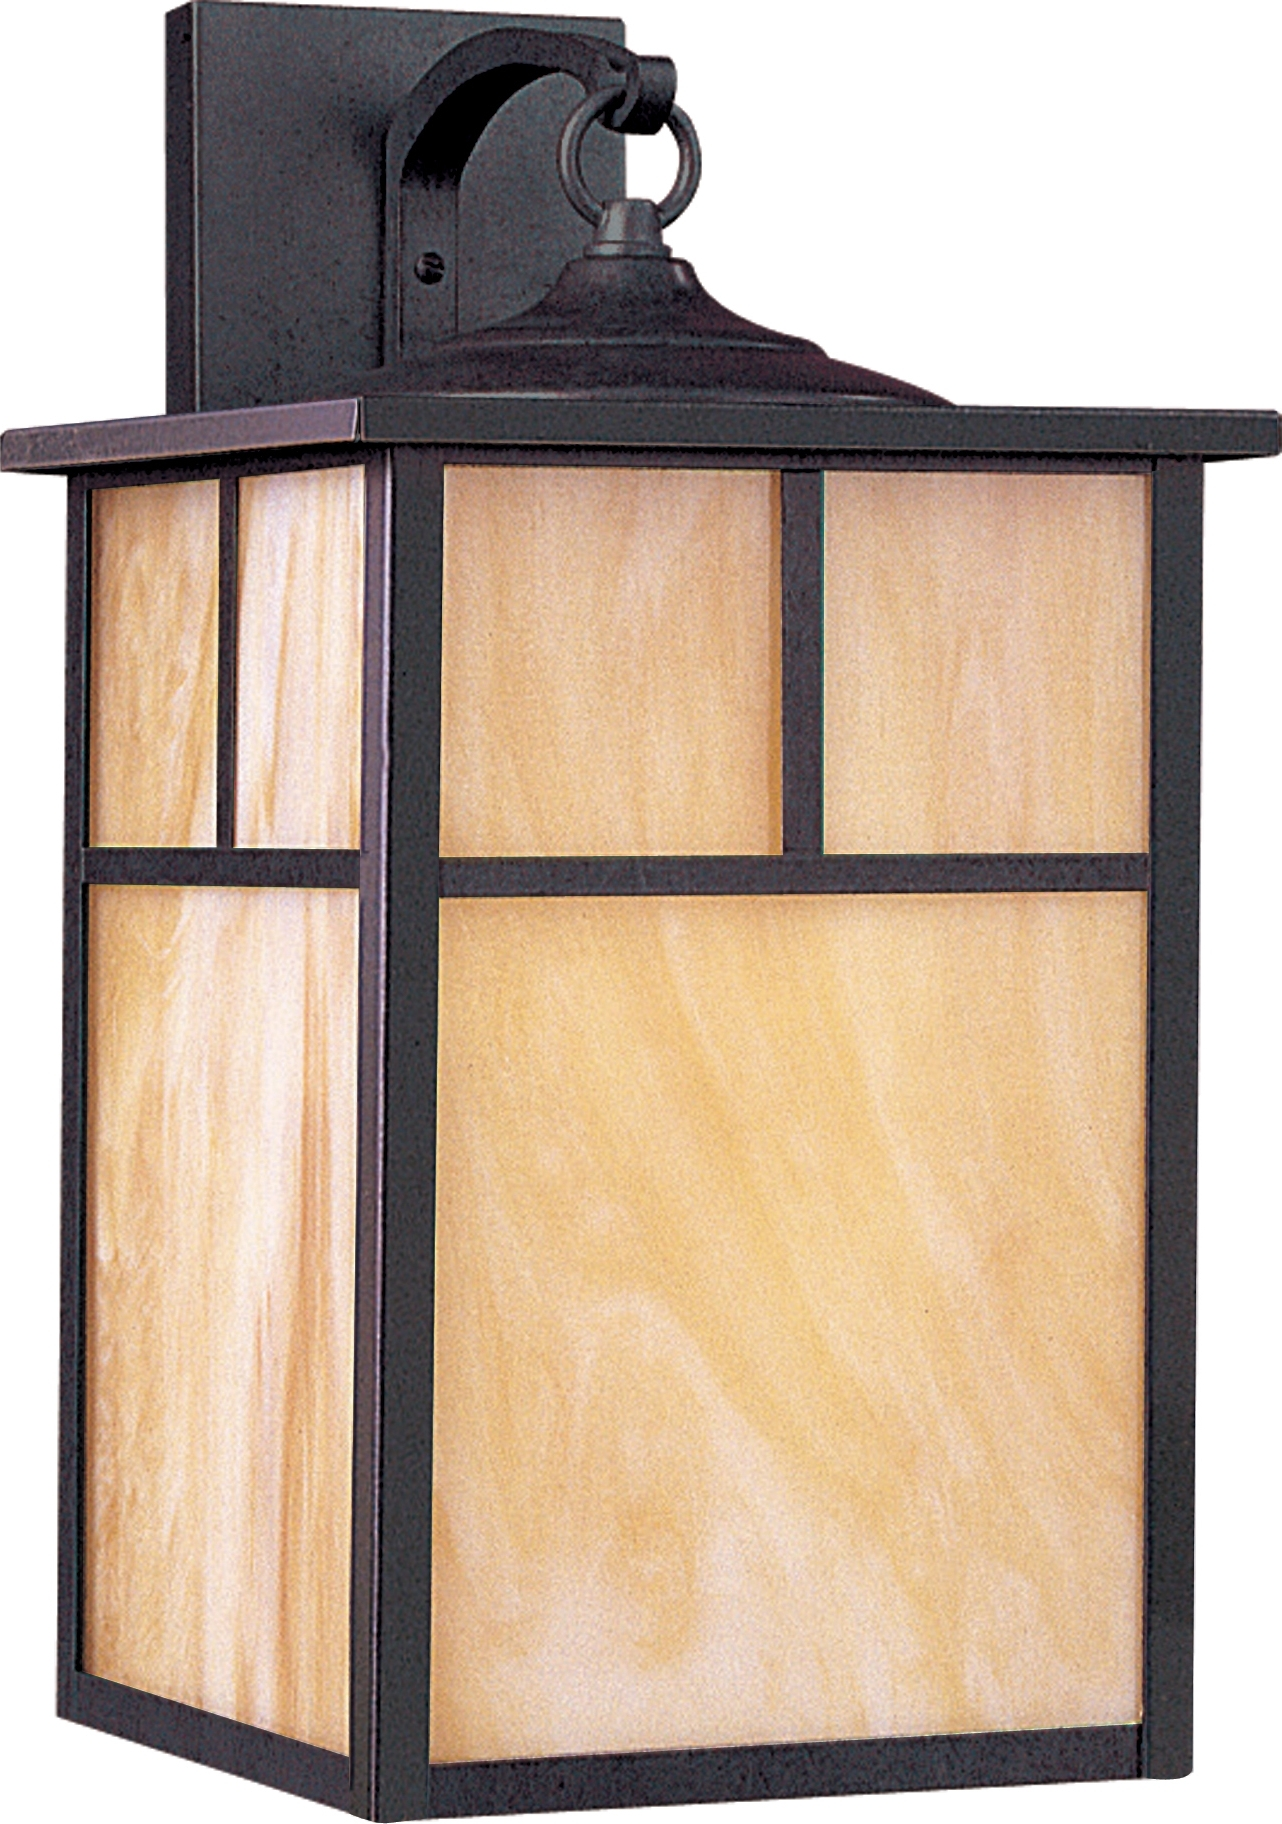 Fashionable Mission Style Outdoor Wall Lighting For Coldwater Ee 1 Light Outdoor Wall Lantern – Outdoor Wall Mount (View 5 of 20)